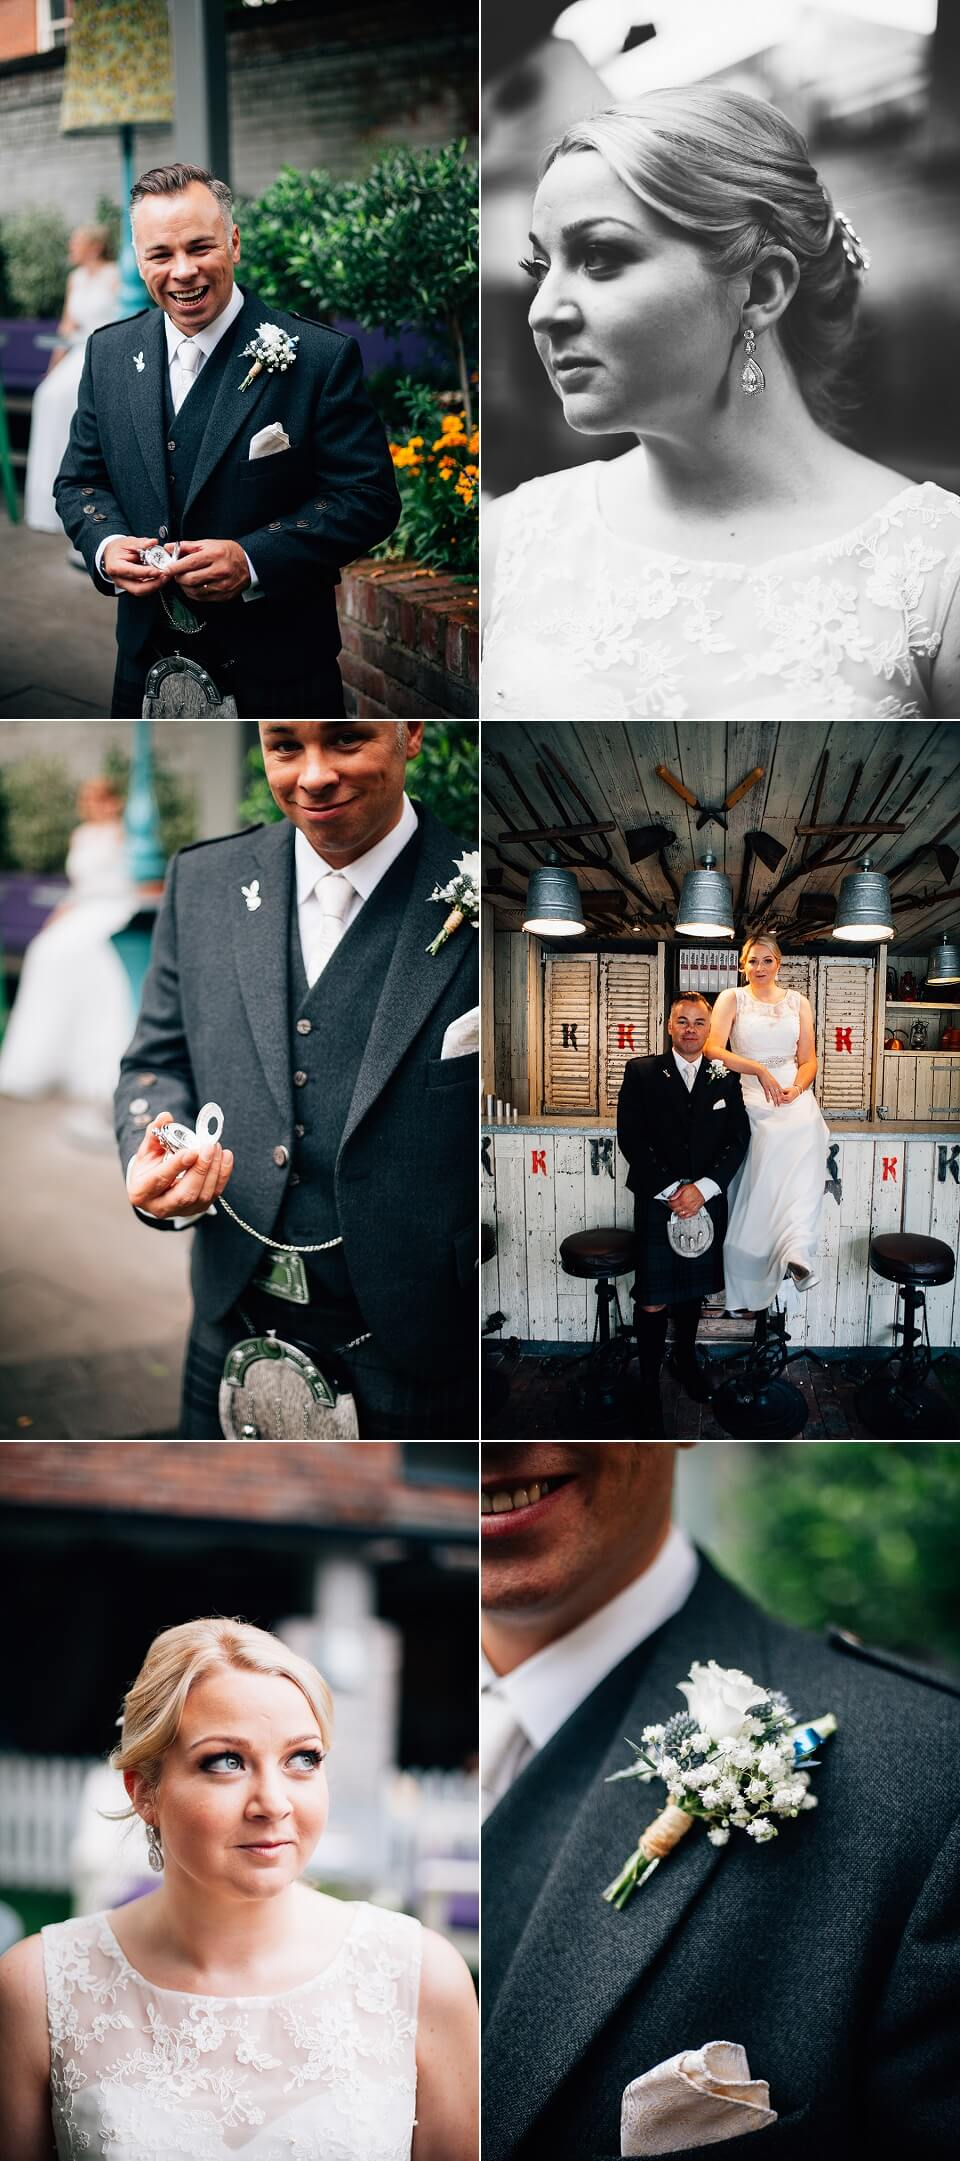 Alice in Wonderland Themed Wedding - Alternative Wedding Photography